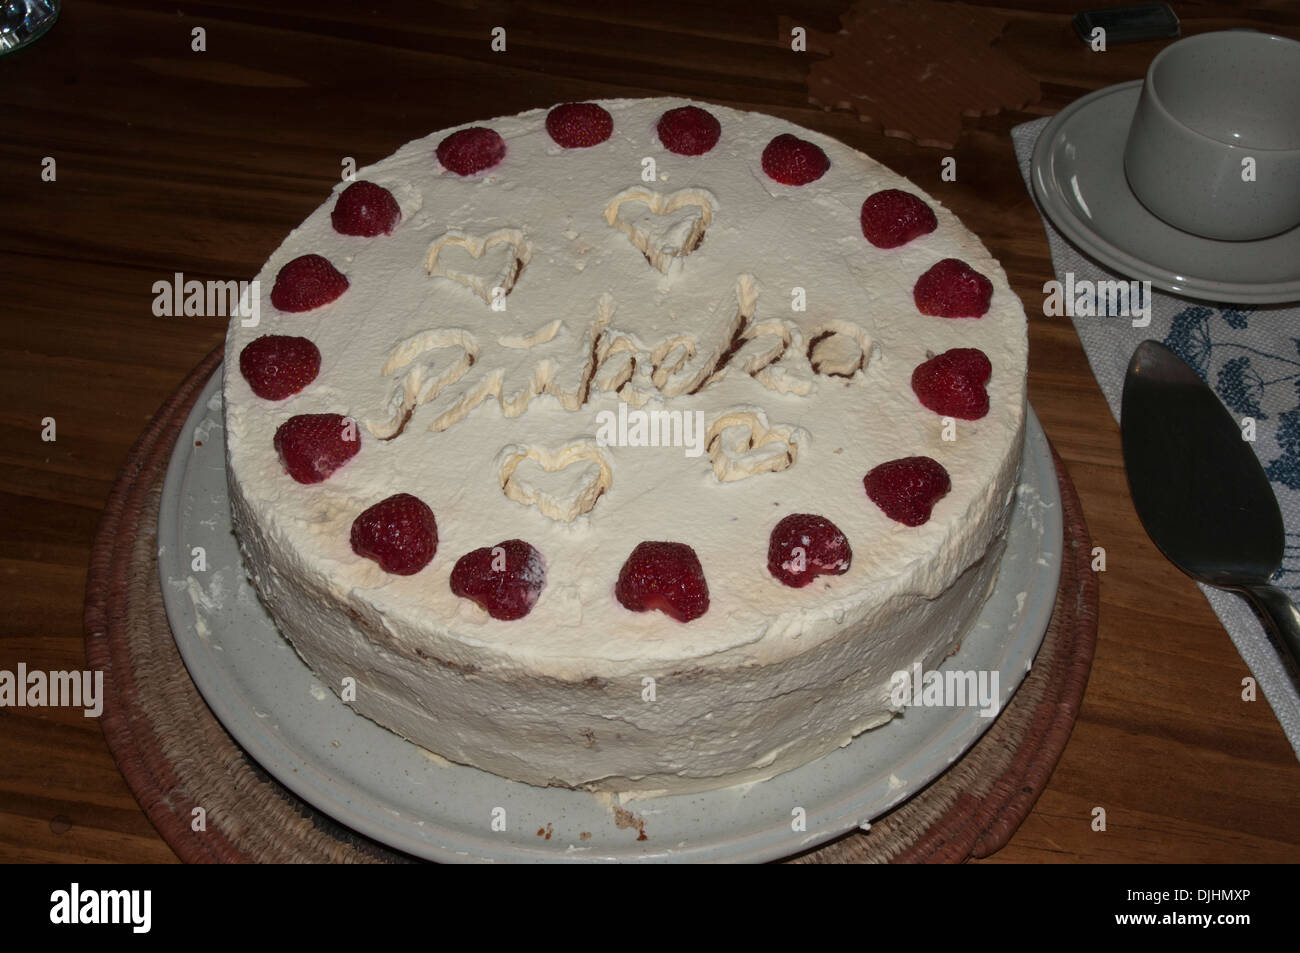 Home Made Cakes With Decorative Elements Ein Selbstgebackener Stock